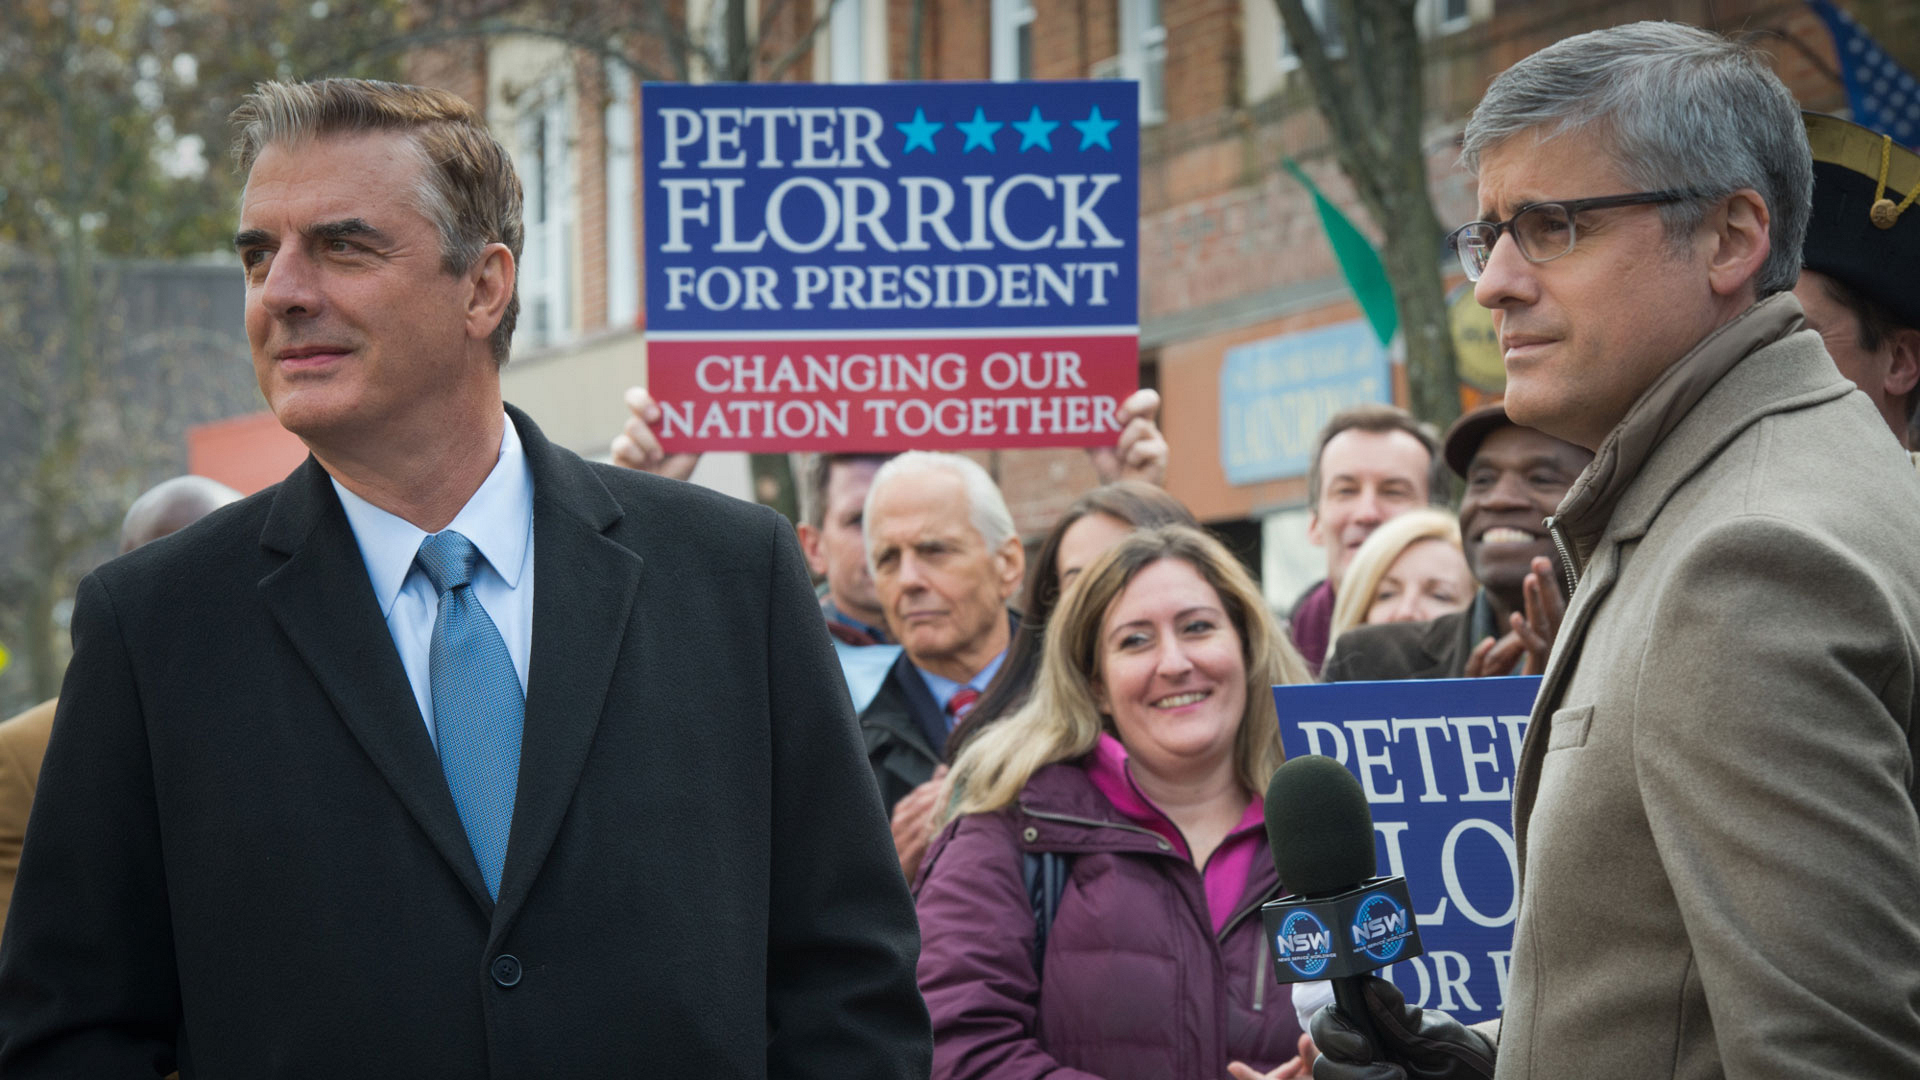 Chris Noth as Peter Florrick and Mo Rocca as Ted Willoughby